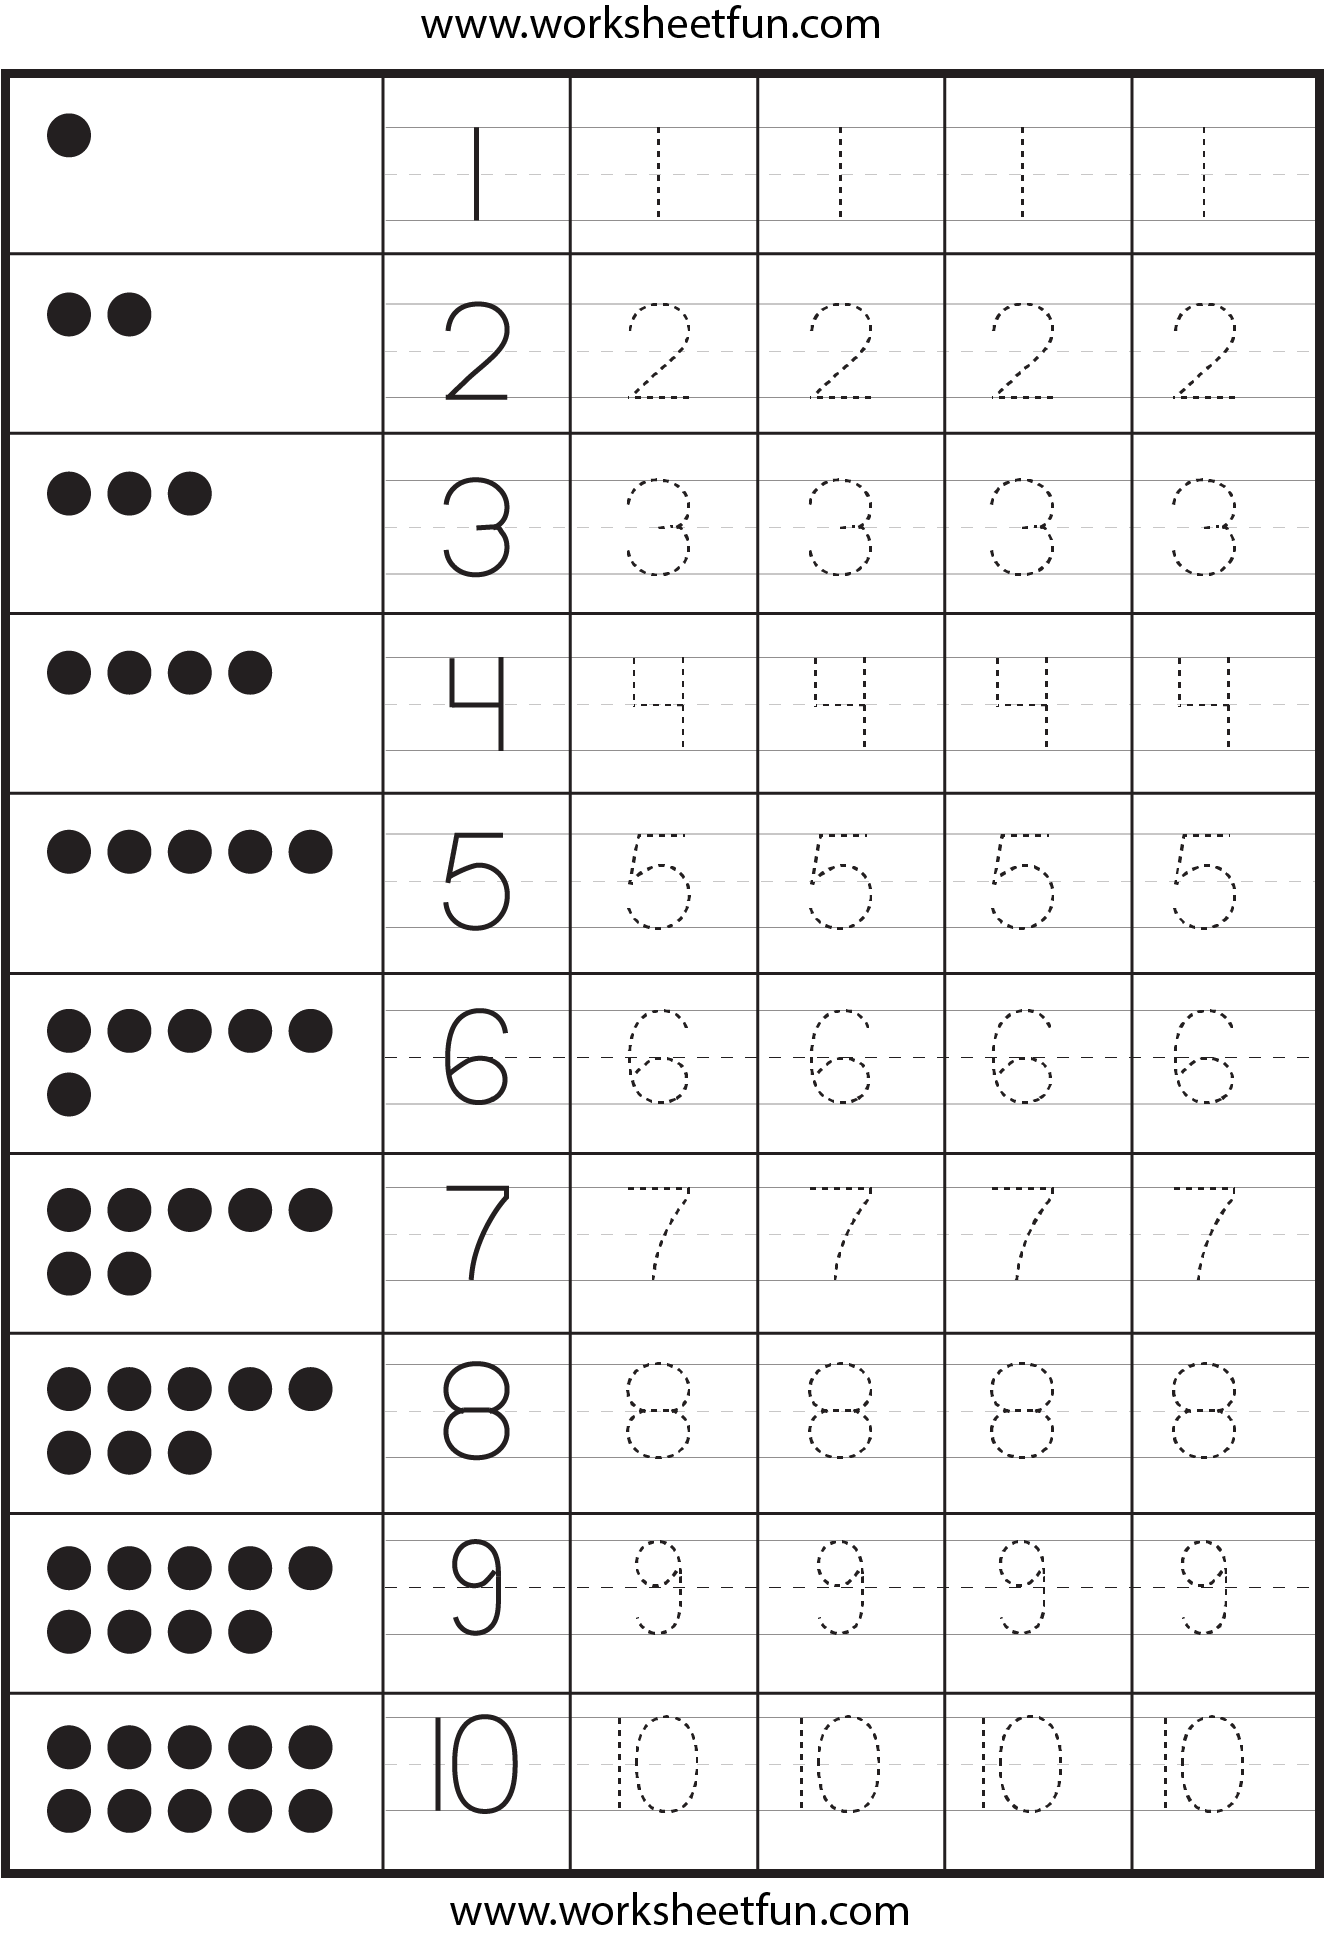 Worksheets Printable Number Worksheets tons of tracing number and letter practice handwriting printable worksheetsfree